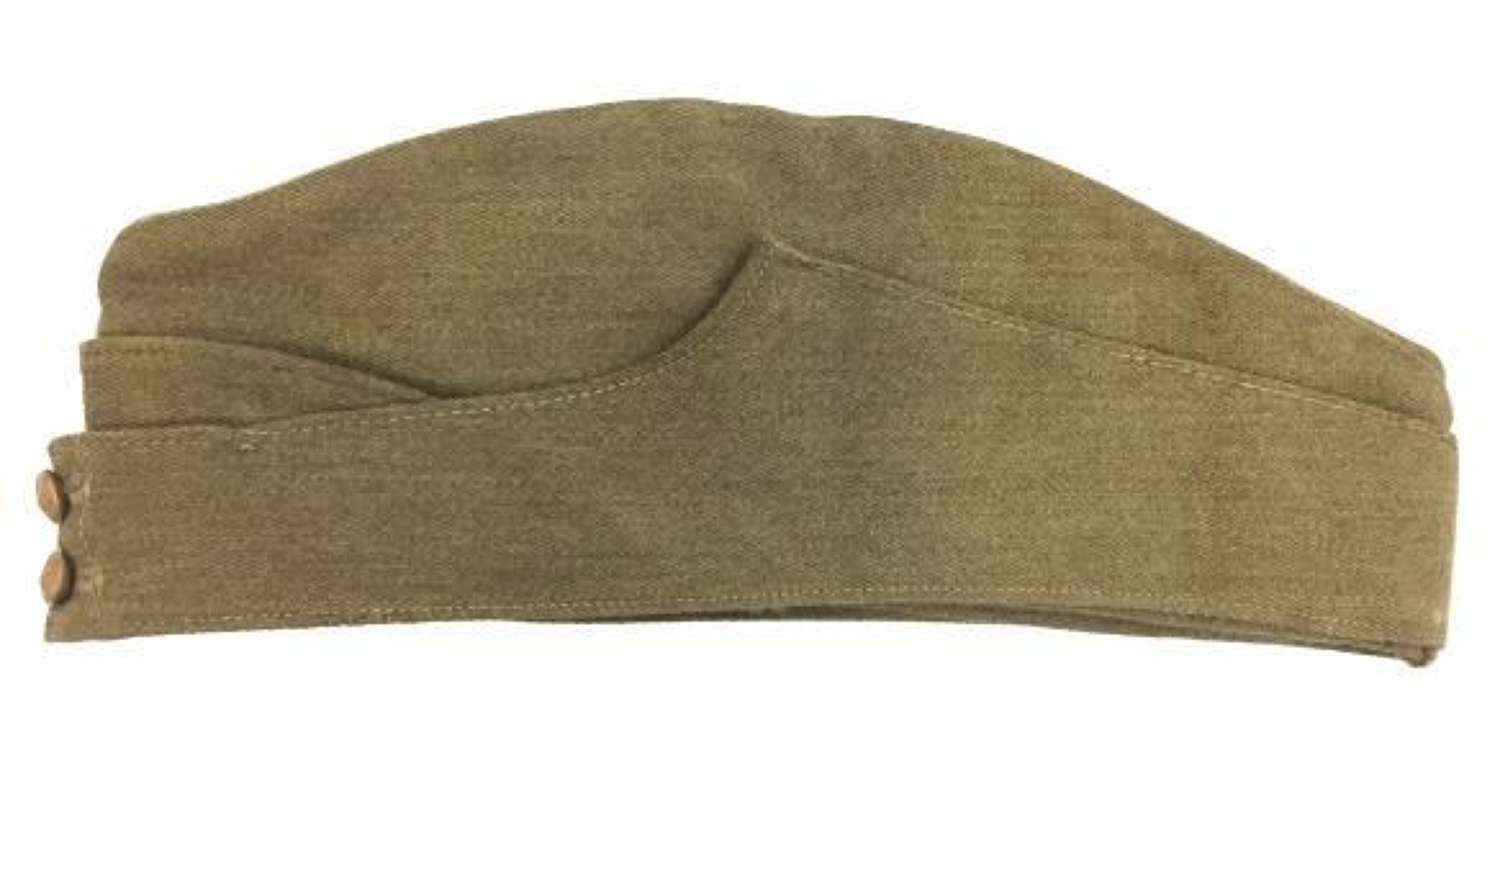 Original WW2 British Army OR Forage Cap - Size 7